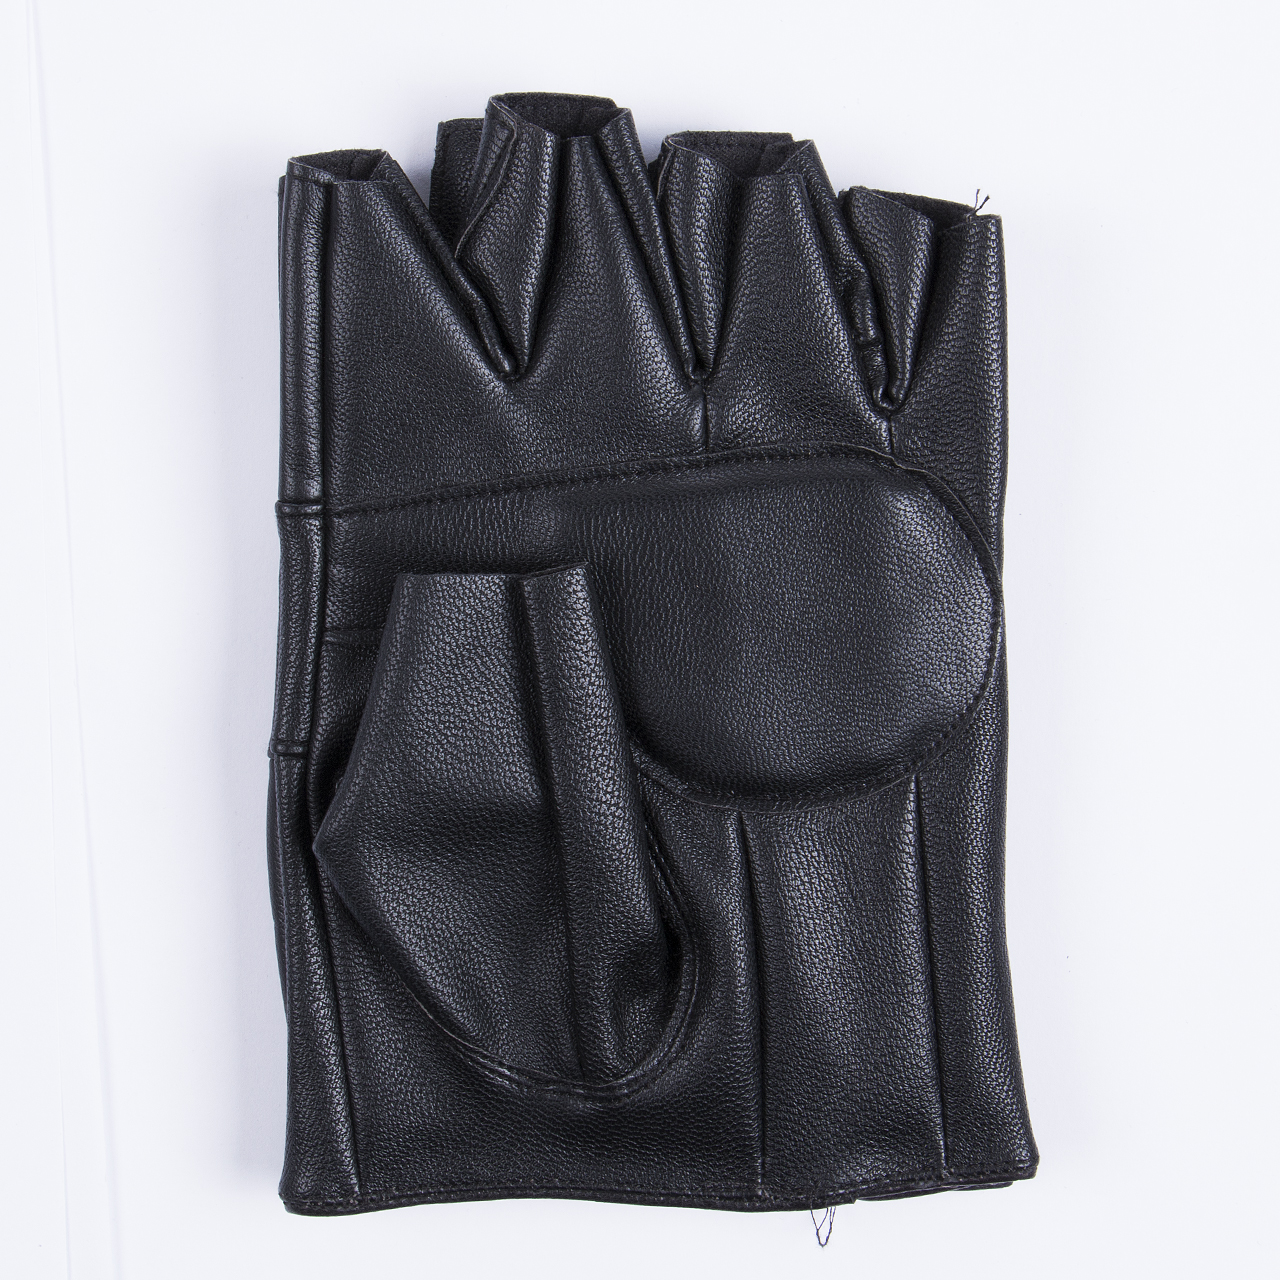 Mens gloves use iphone - Men S Pu Leather Gloves Half Finger Fingerless Gloves Climbing Bicycle Anti Skid Fitness Workout Gym Gloves